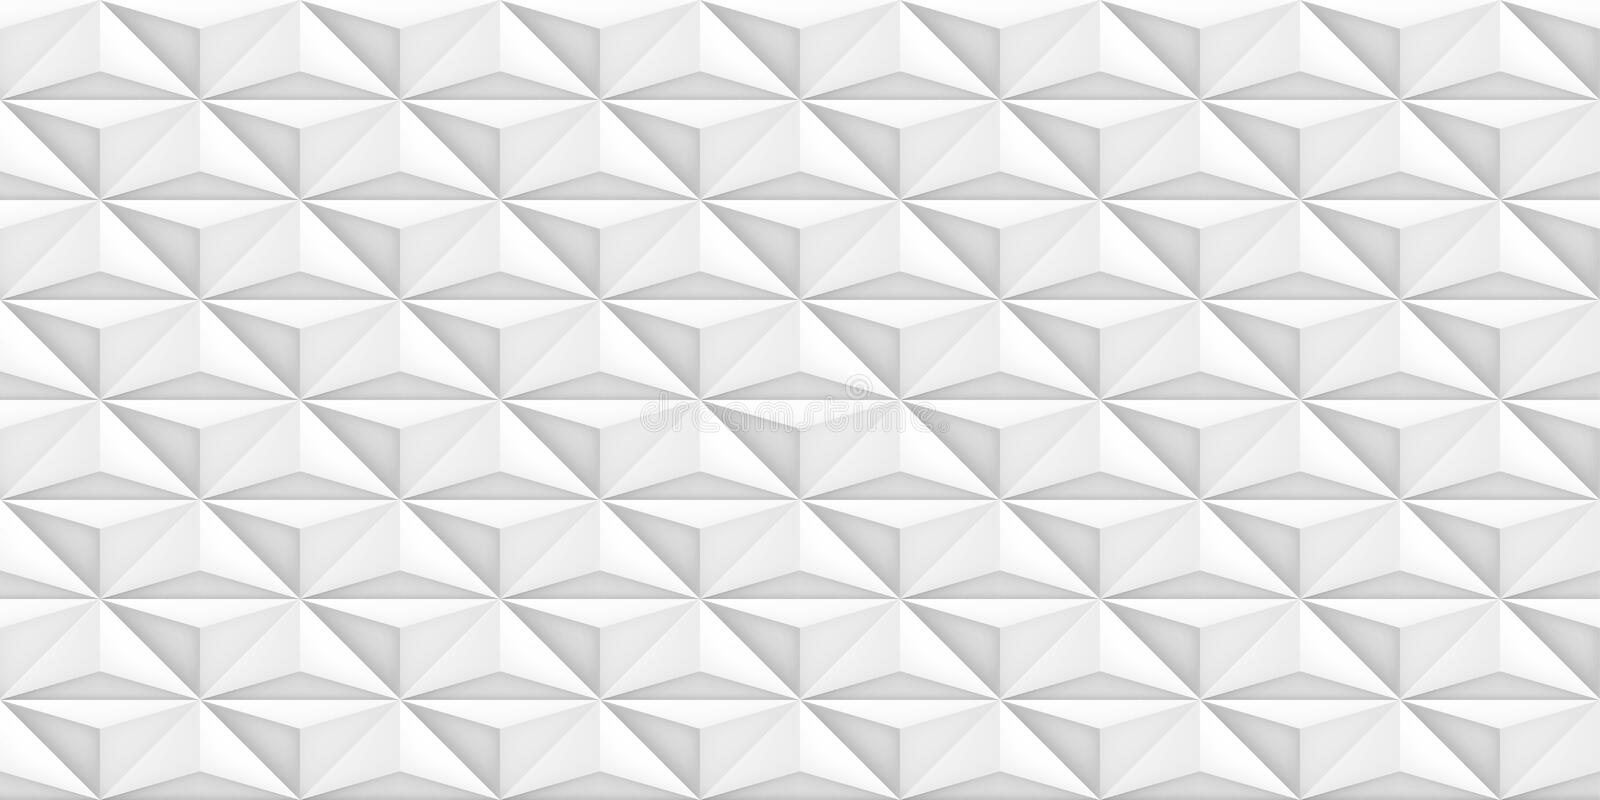 Volume realistic vector light texture, geometric seamless tiles pattern, design white background for you projects royalty free illustration